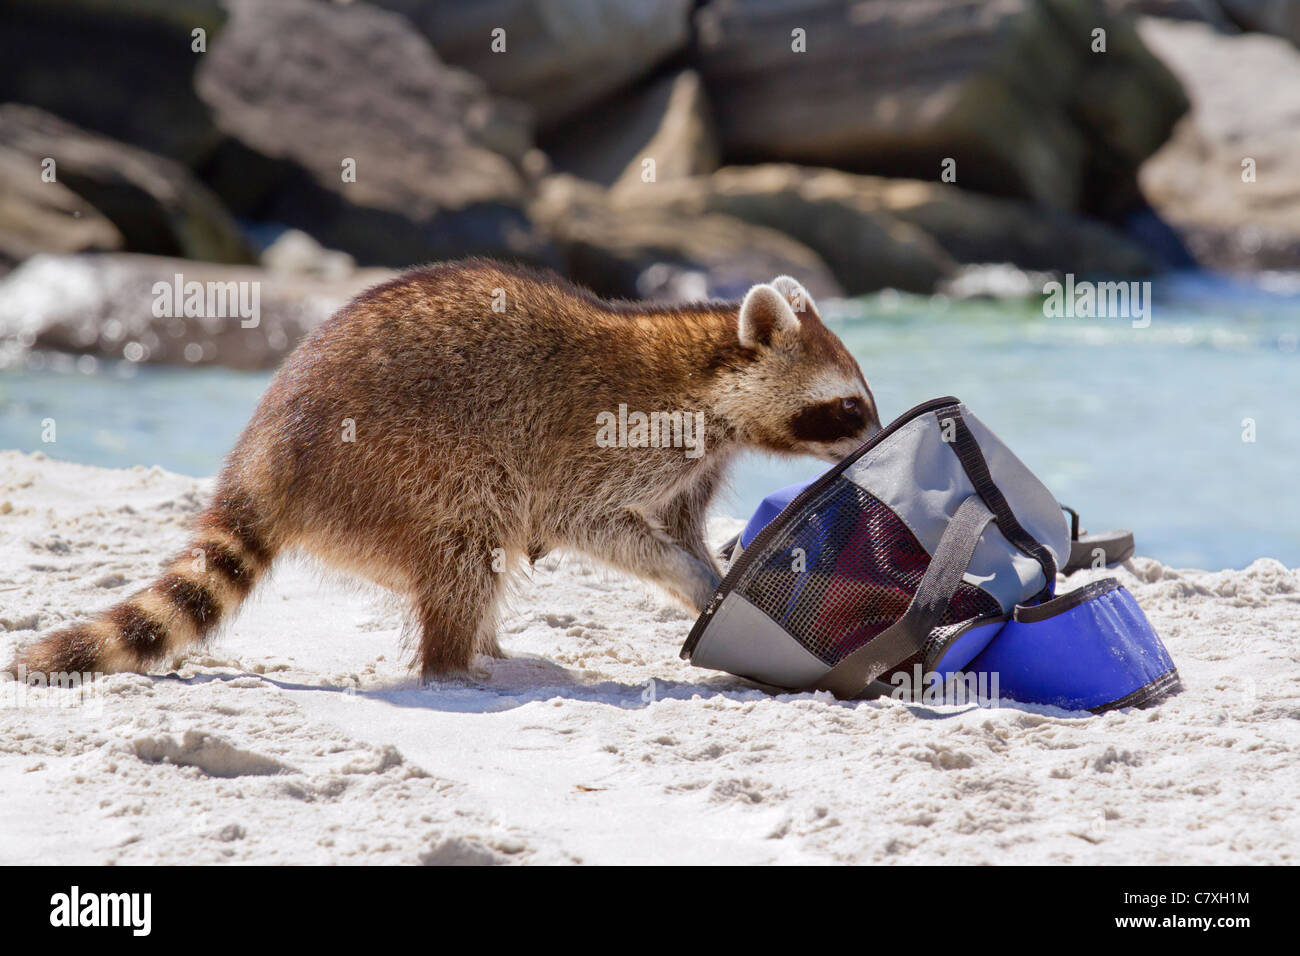 Young raccoon (Procyon lotor) scavenging at the Florida beach. - Stock Image